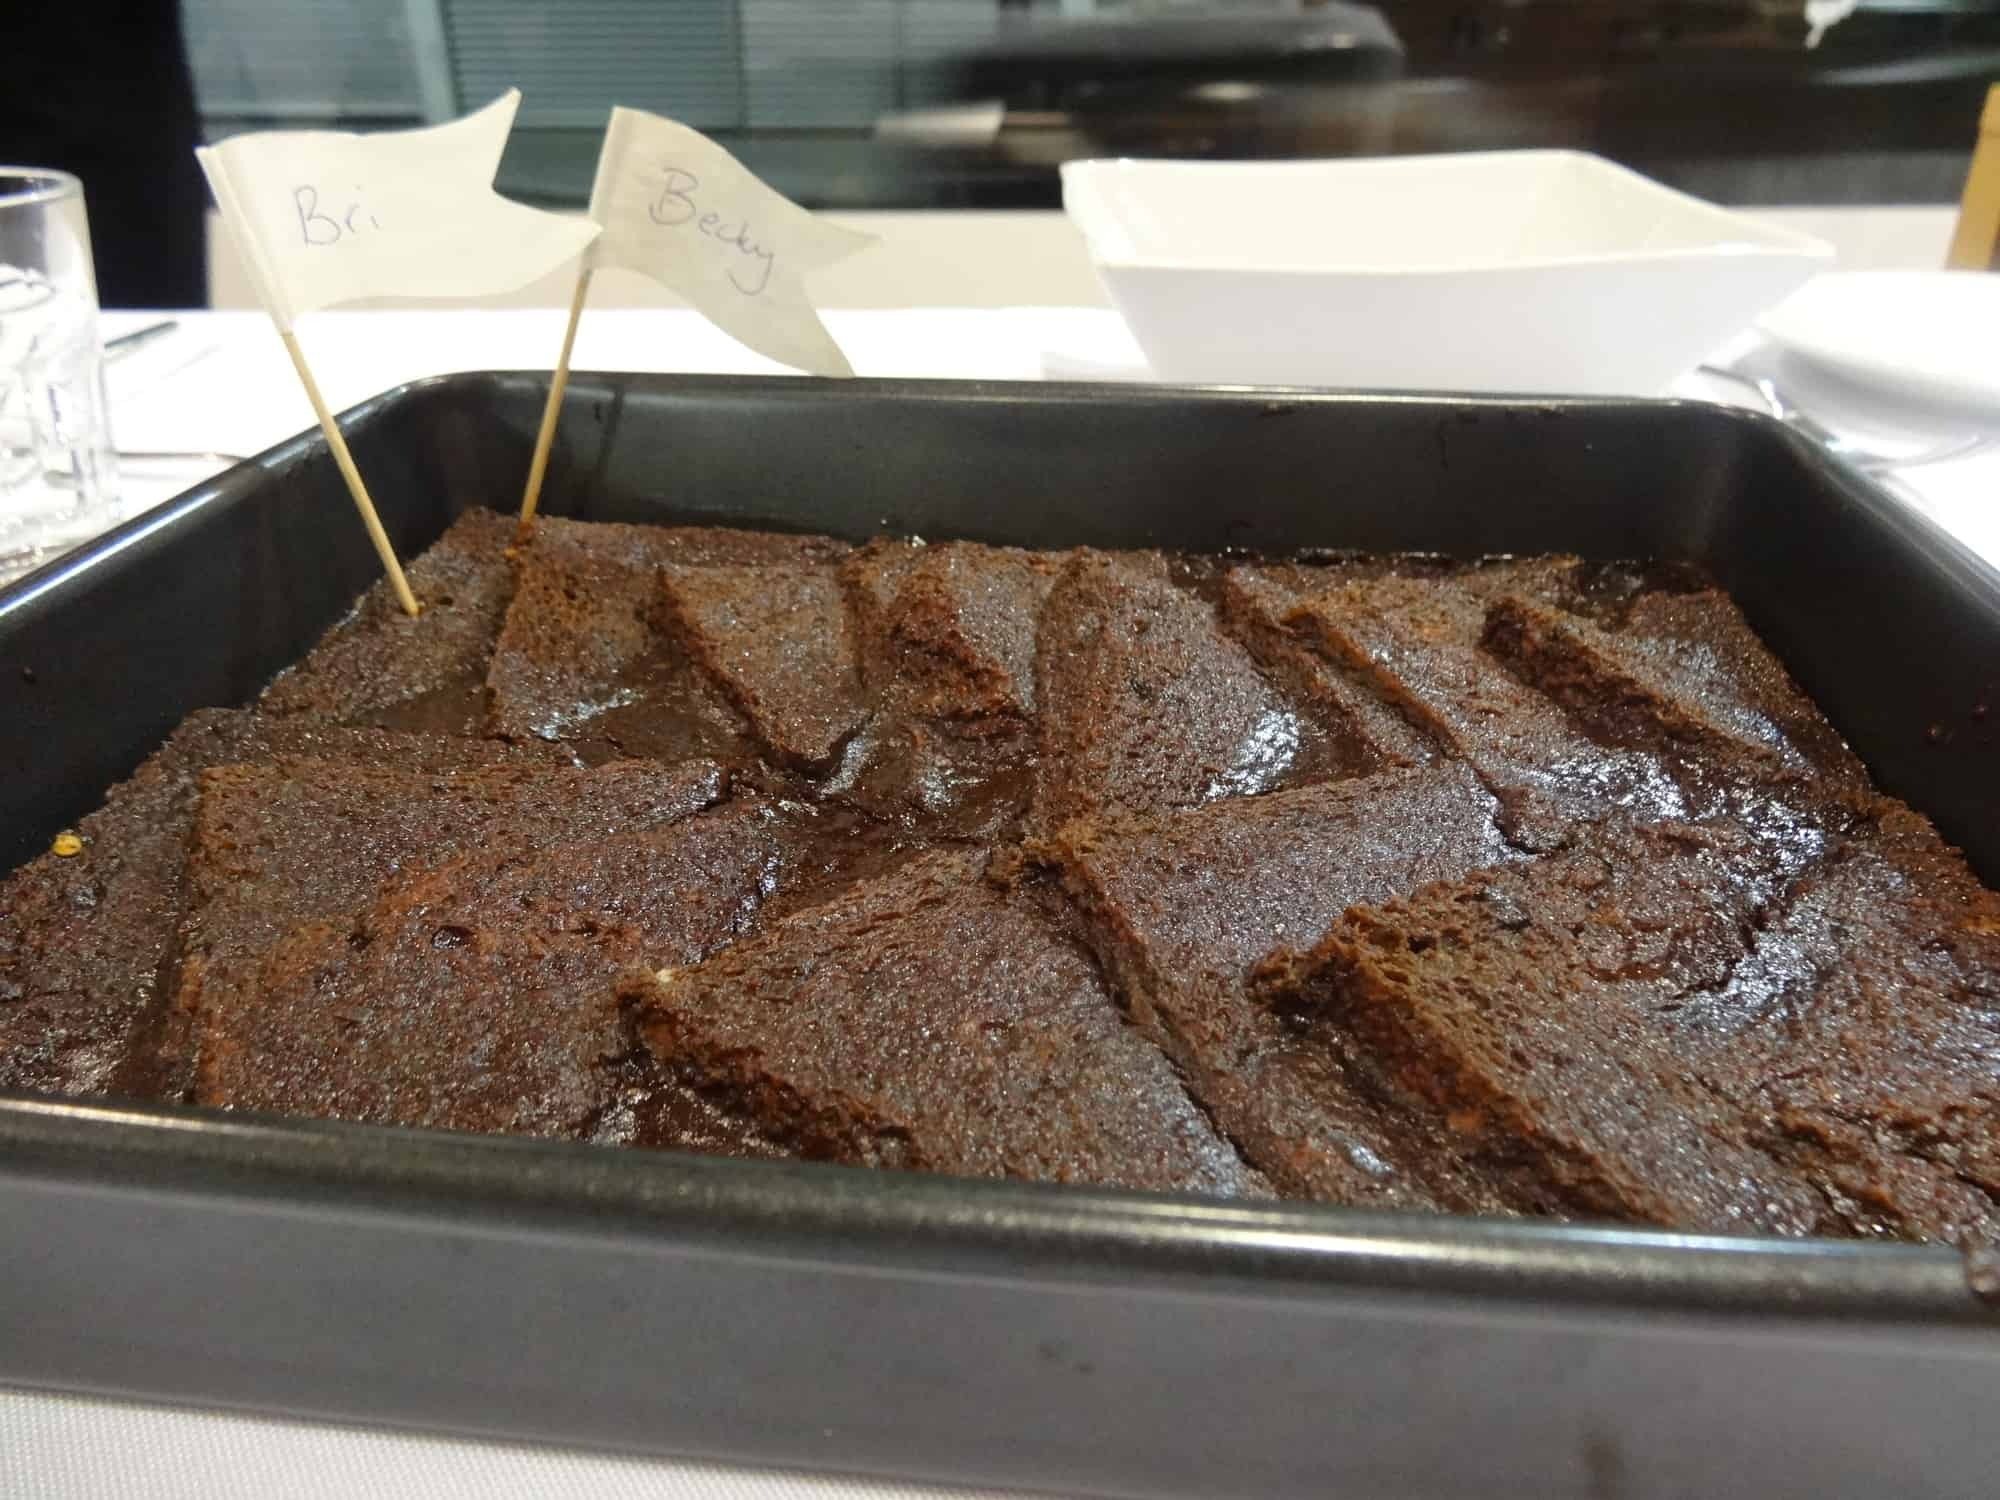 RECIPE: Chocolate Gluten Free Bread and Butter Pudding